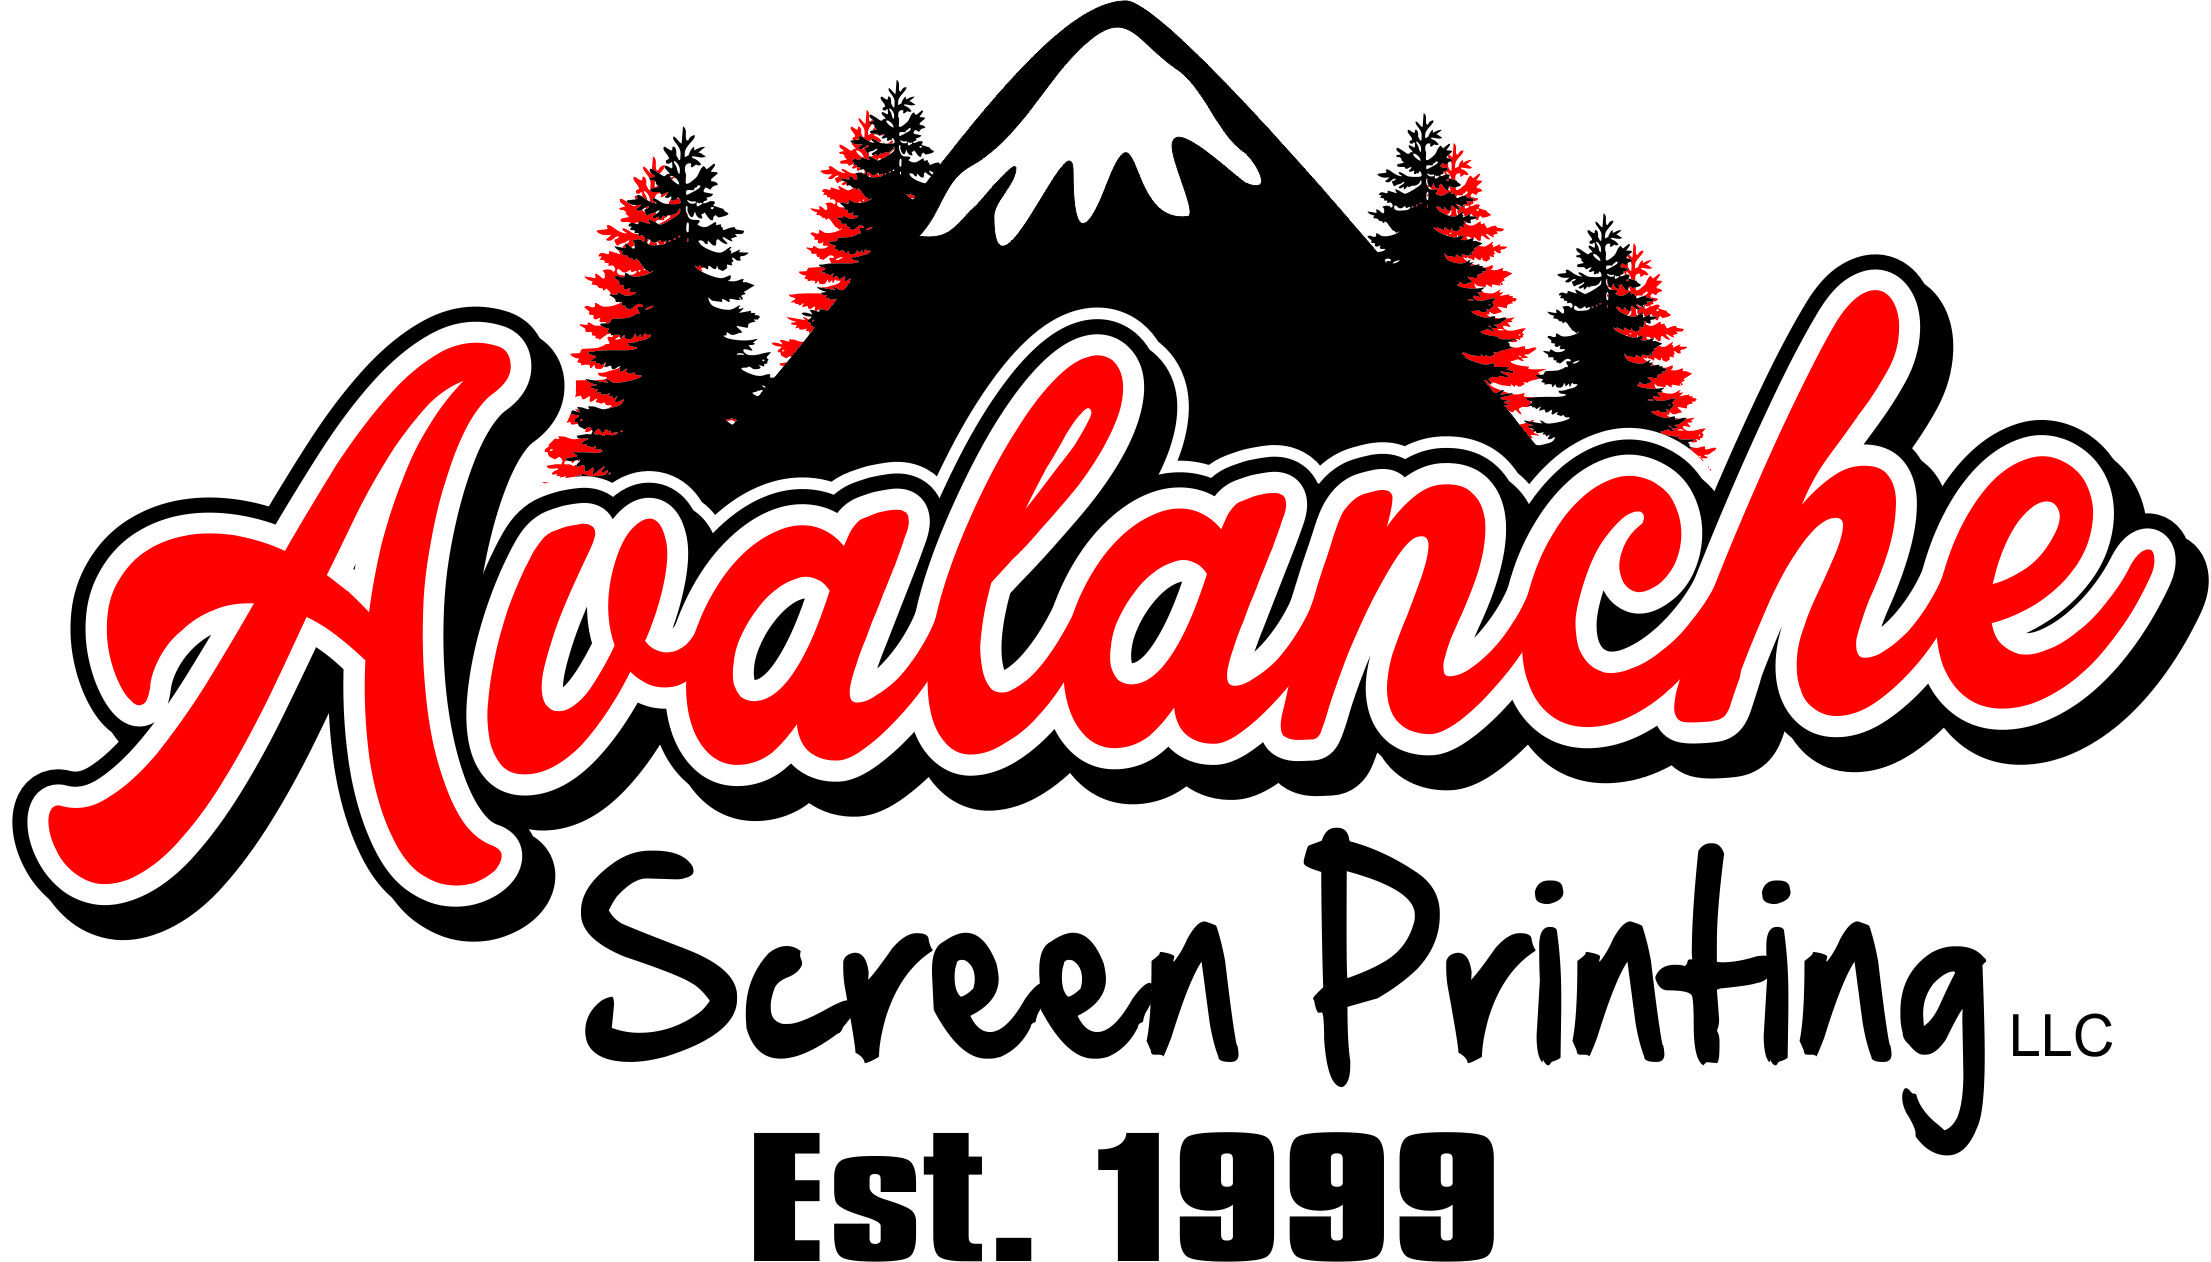 Avalanche Screen Printing